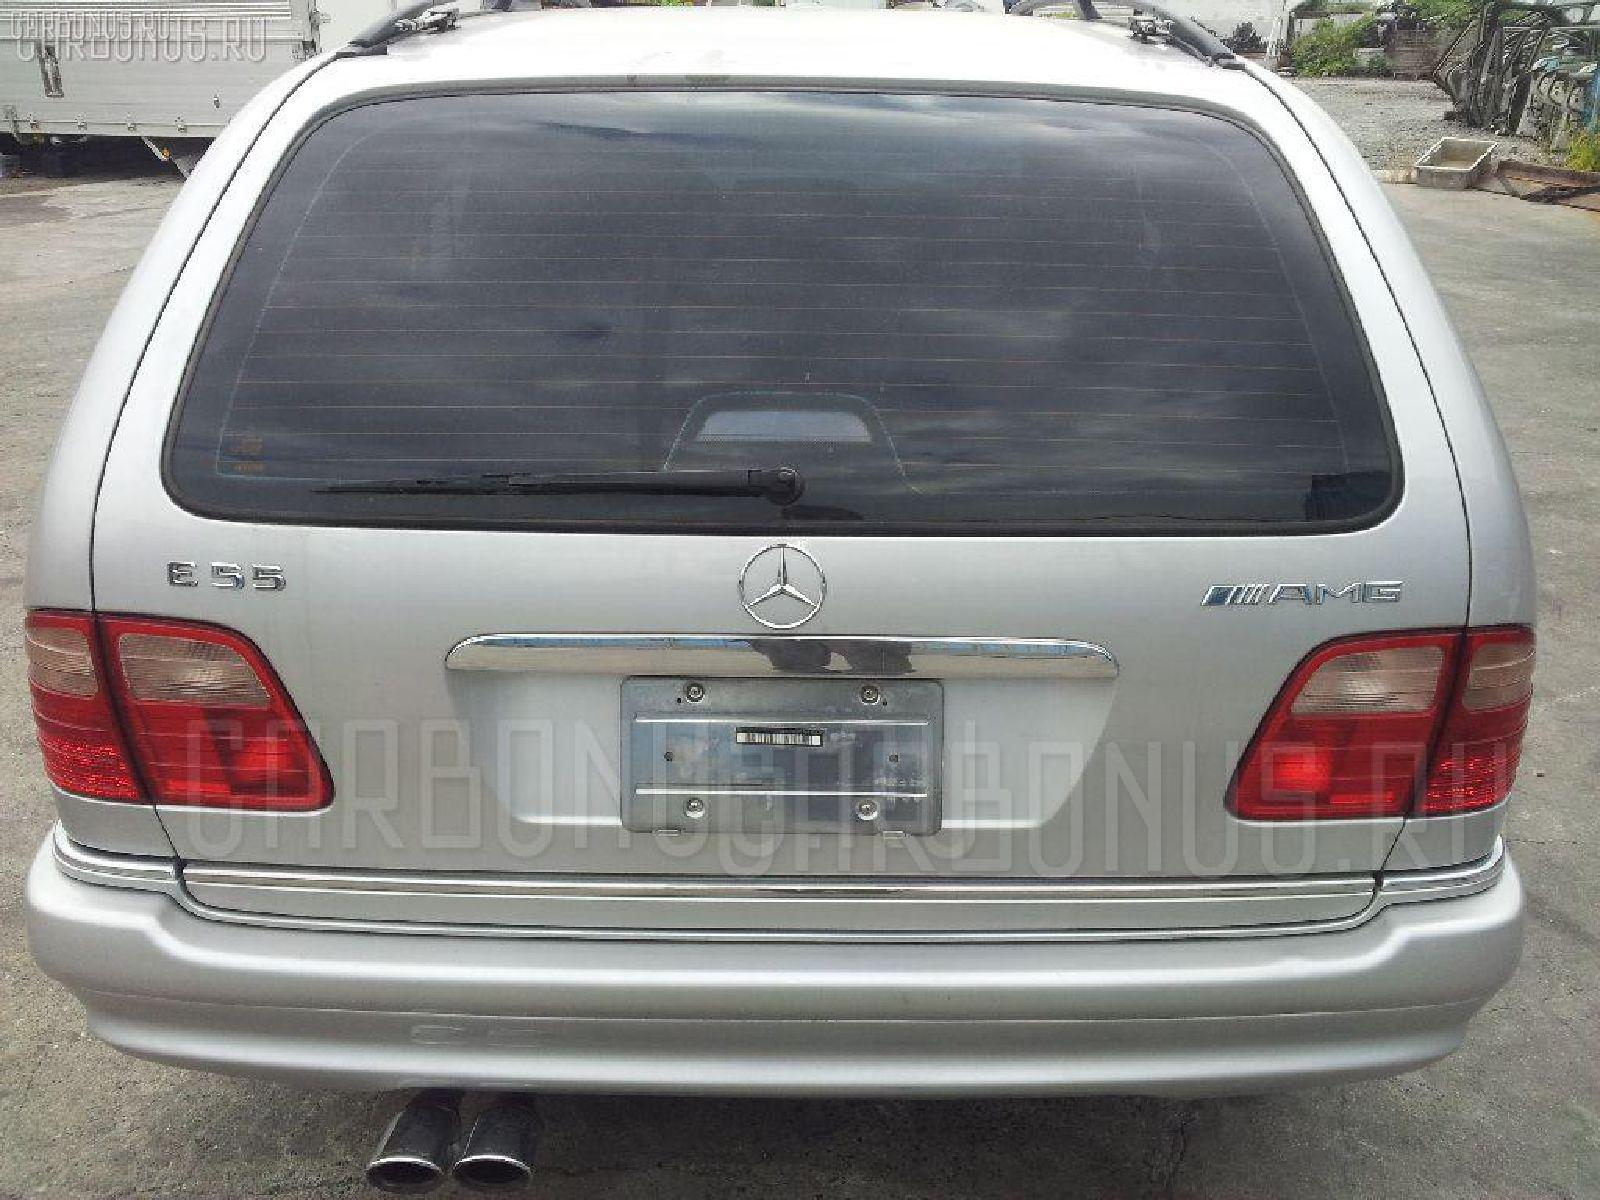 Air bag MERCEDES-BENZ E-CLASS STATION WAGON S210.265 Фото 6